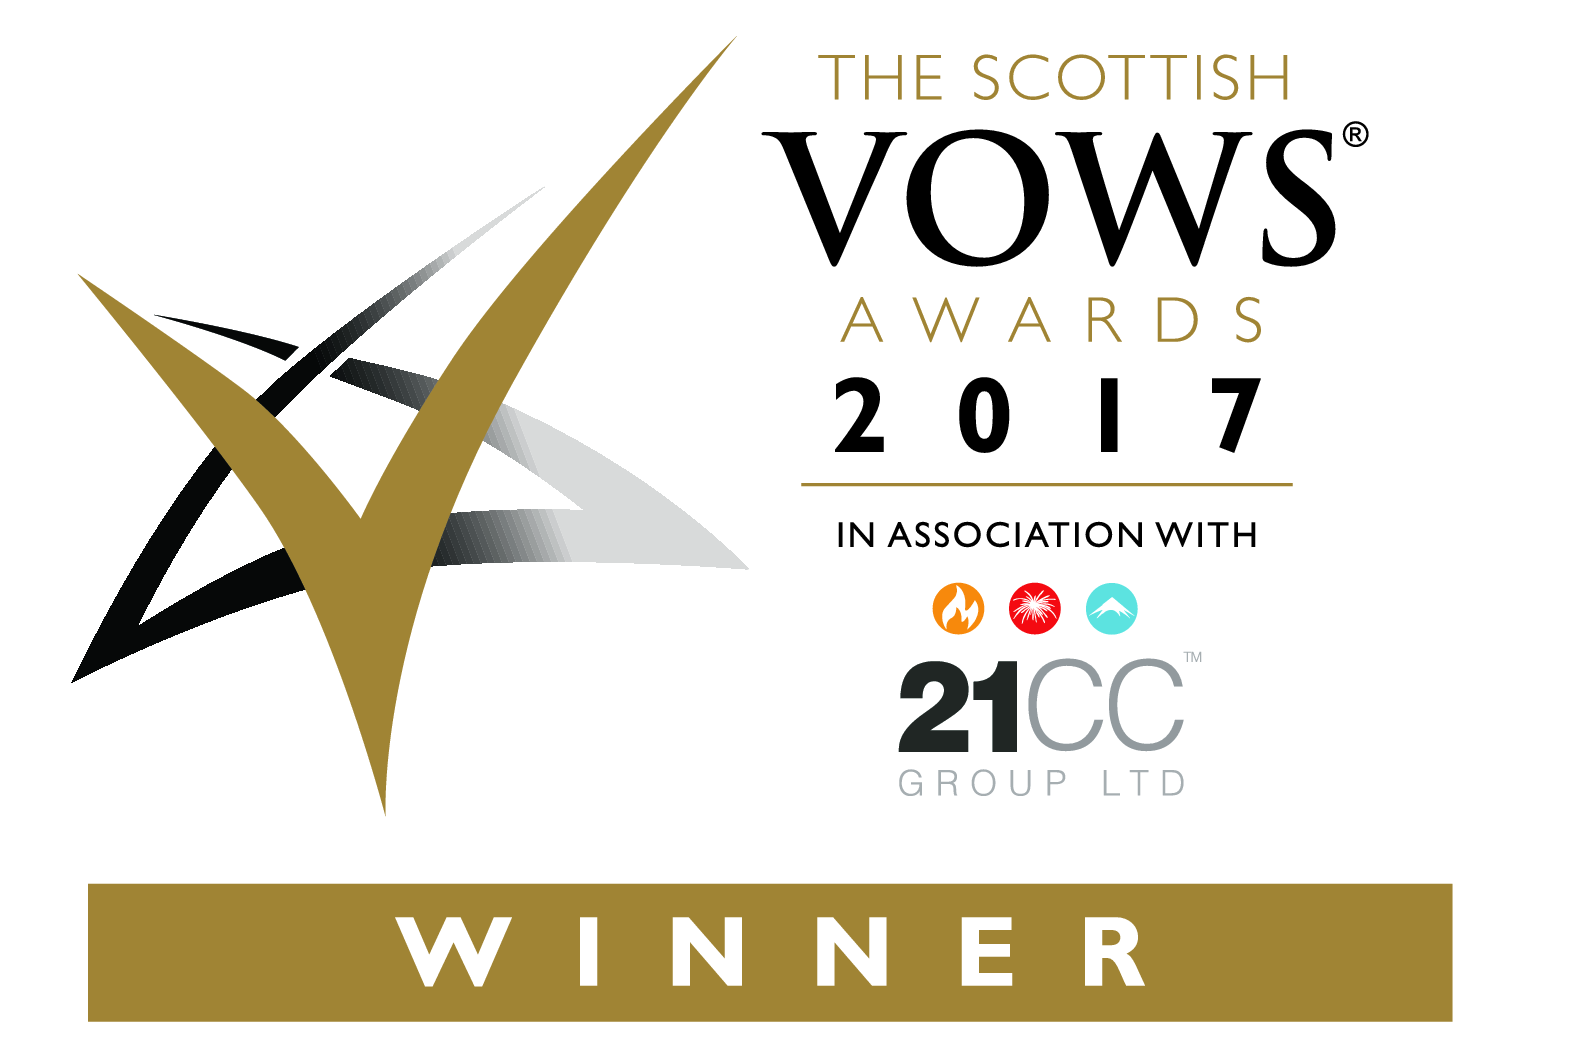 Scottish Vows Awards 2017 Winner